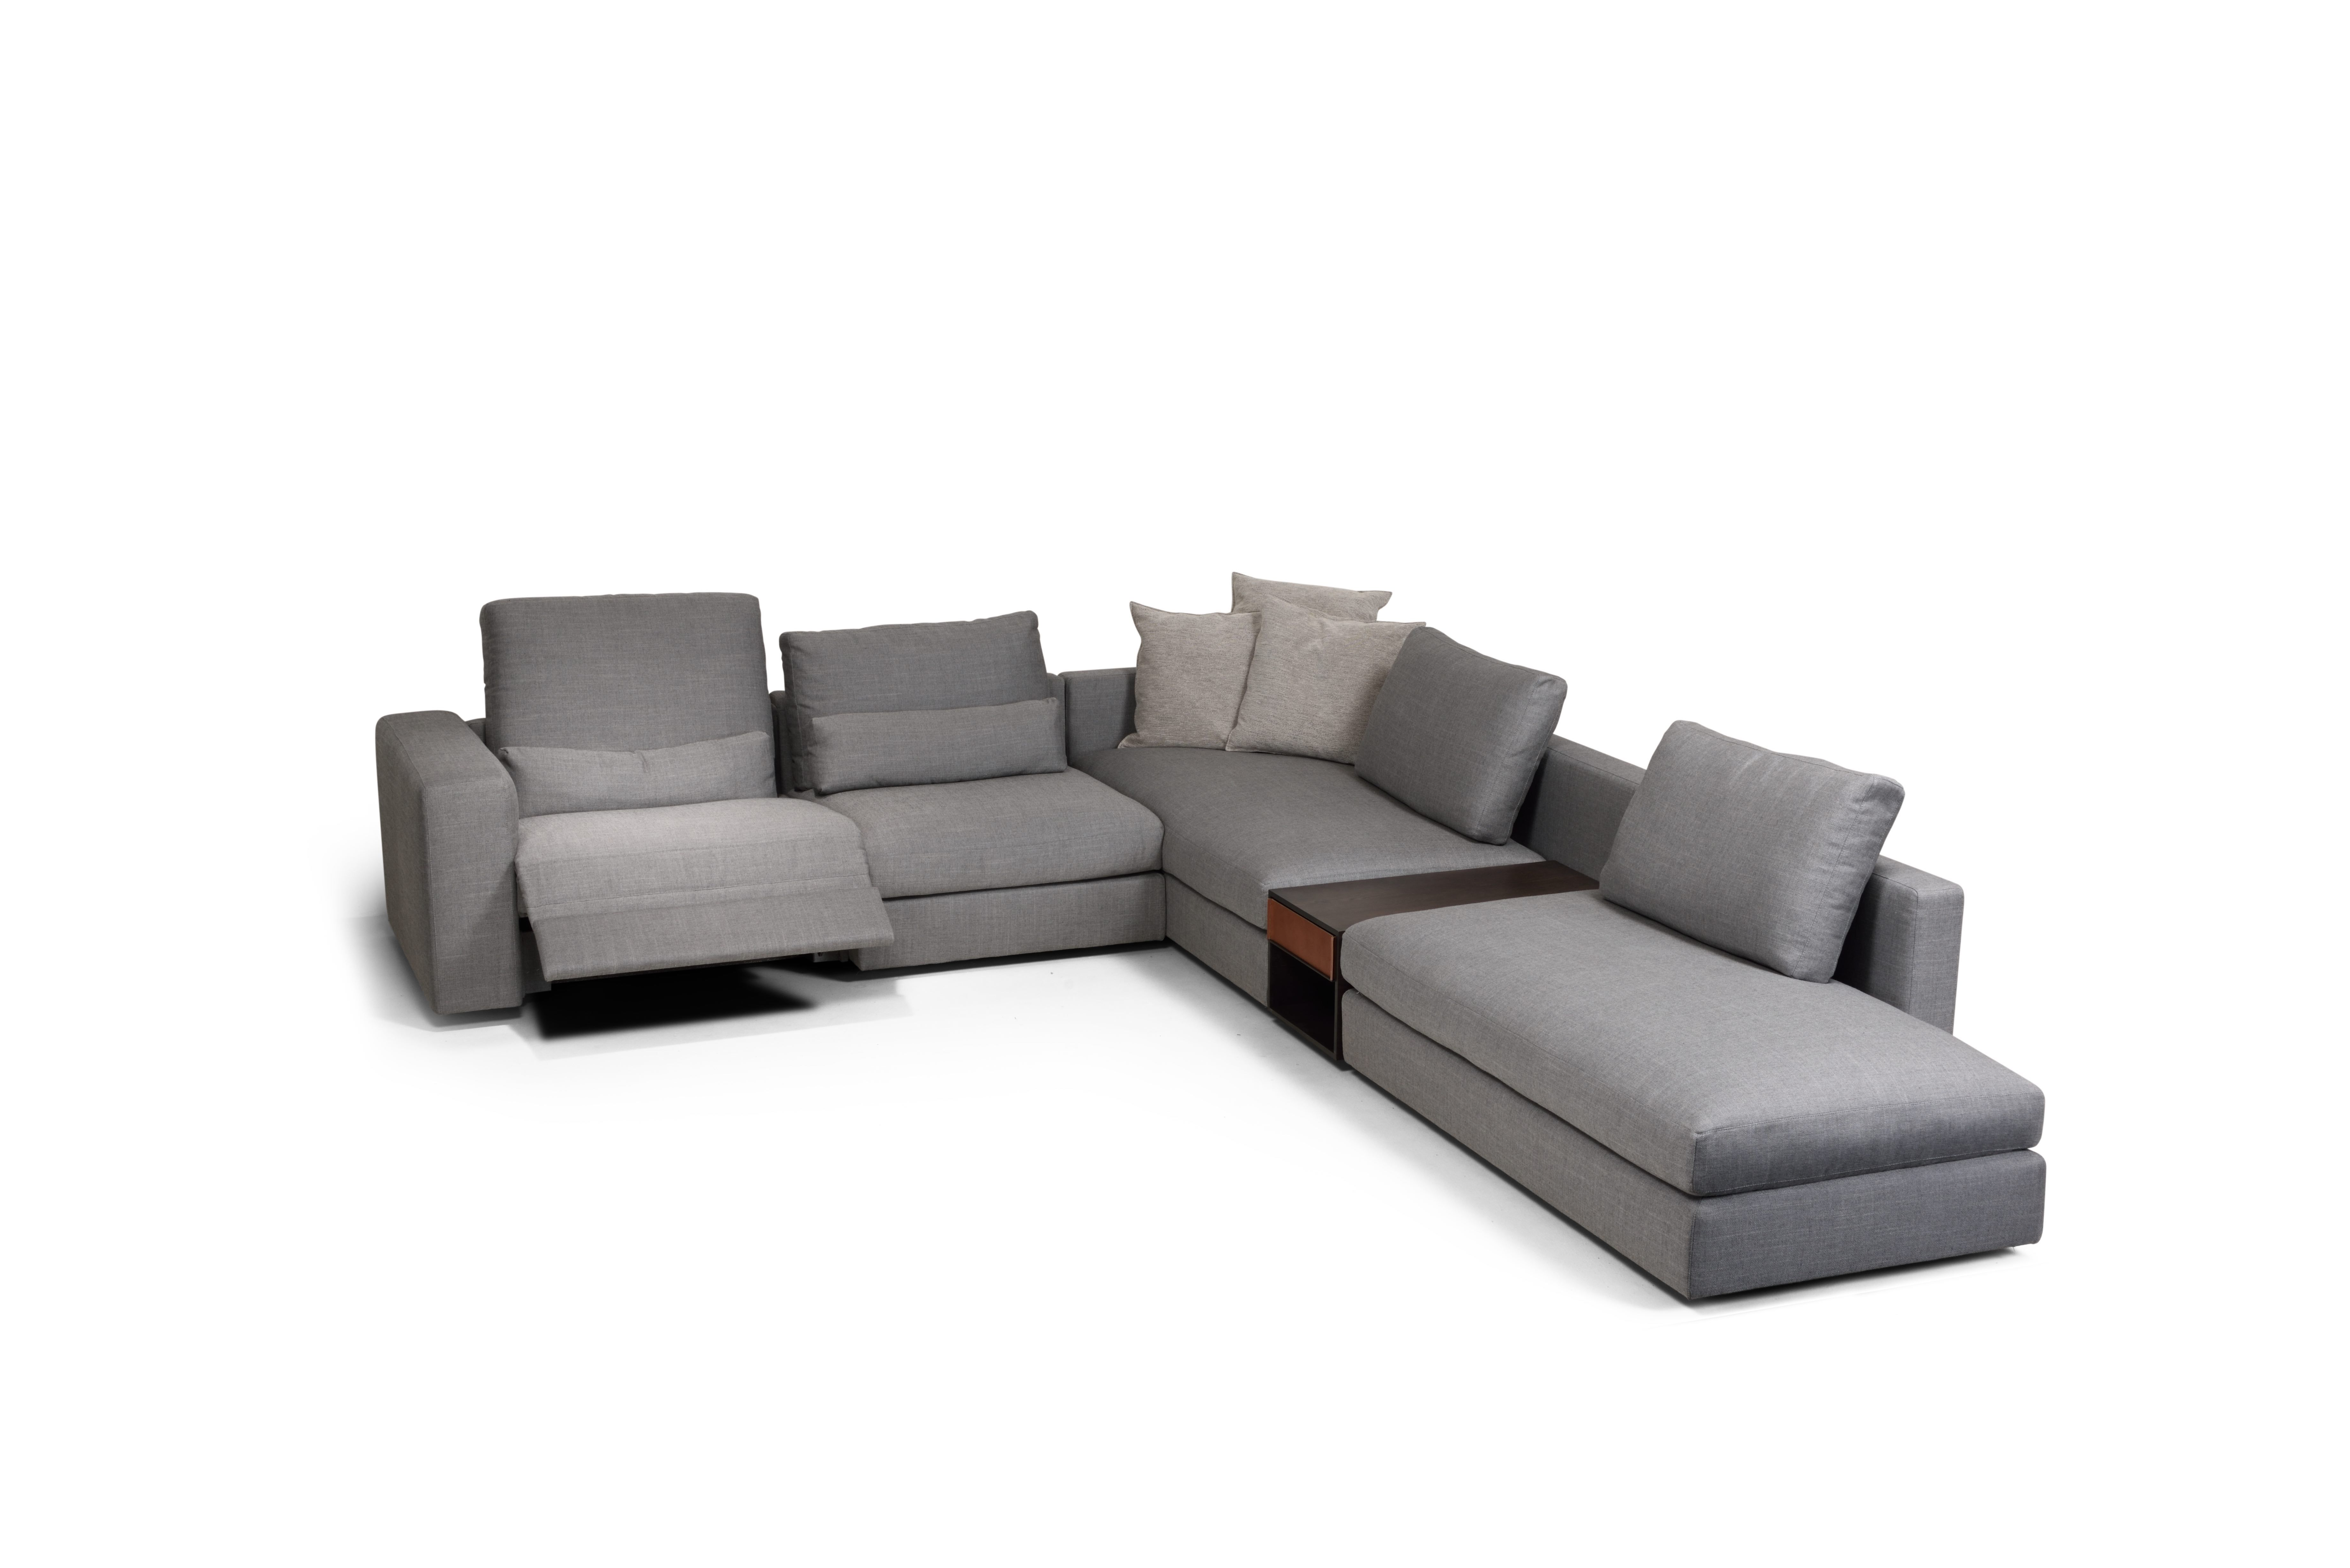 Luv Indera flexible sofa with integradet relax | Indera: LUV by ...